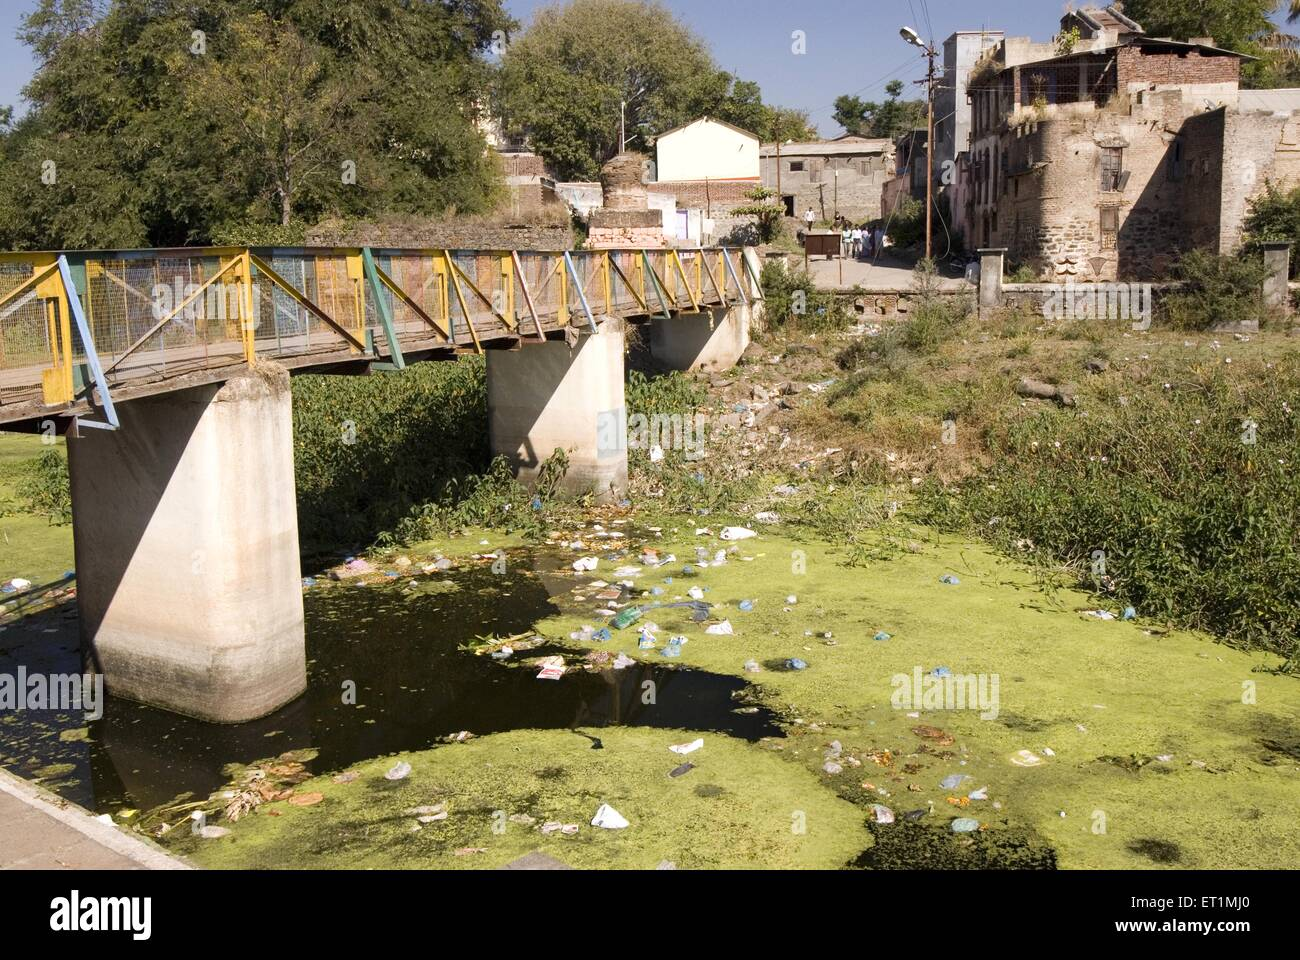 Pollution river turns into garbage dump people throw rubbish river karh Sasvad village taluka Purandar Pune maharashtra - Stock Image